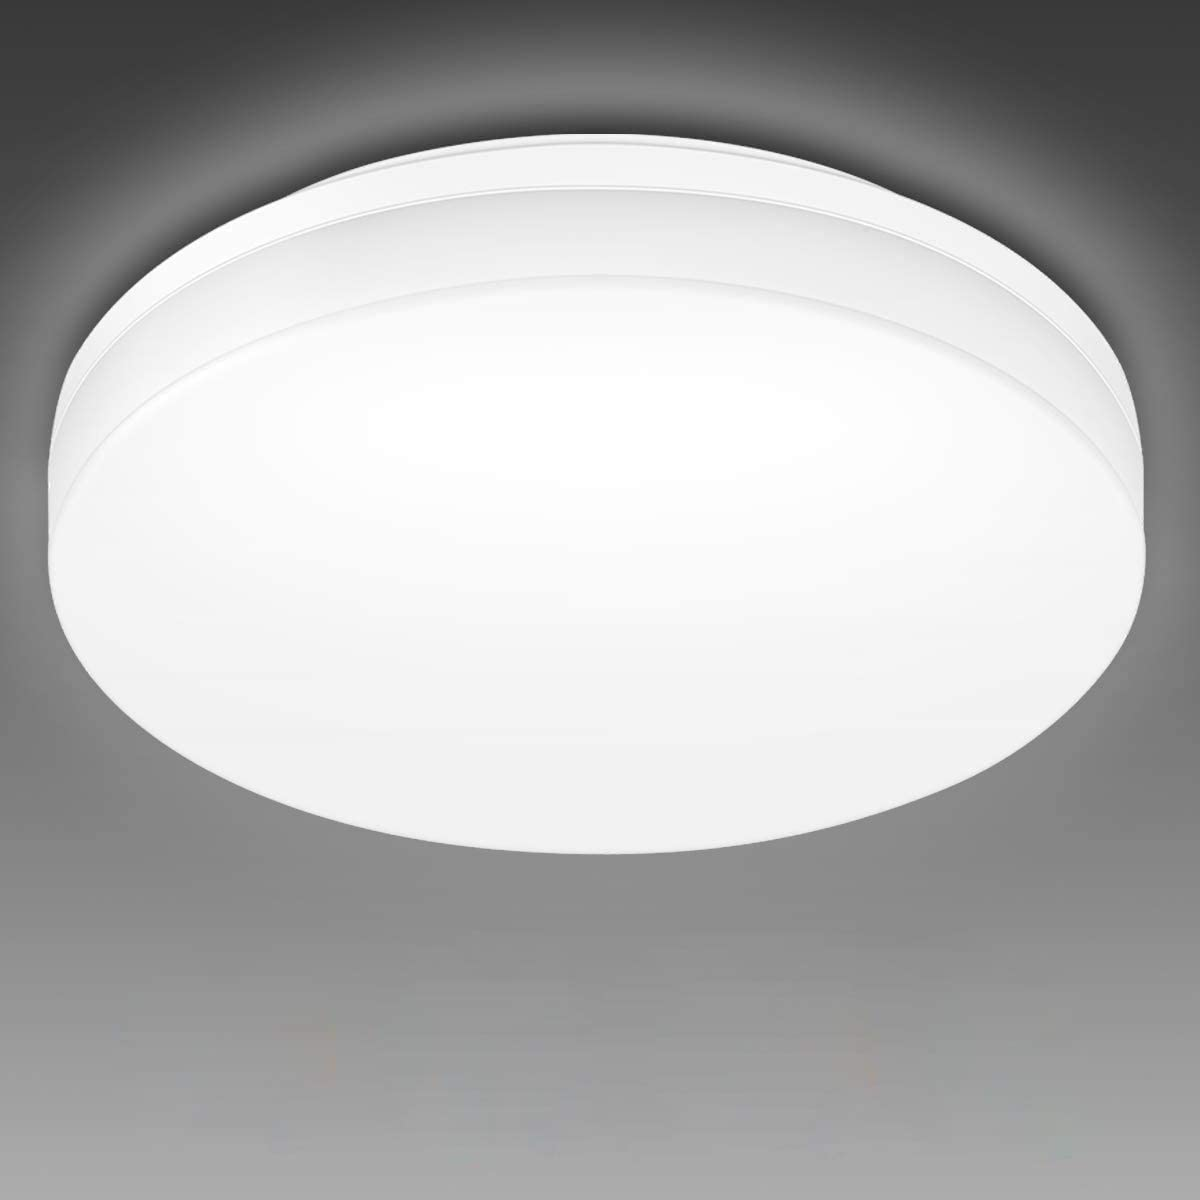 LE Ceiling Light Fixture, 4W Waterproof Flush Mount LED Ceiling Lamp,  400lm Non-dimmable 4W Incandescent Bulb Replacement Lighting for  Kitchen,